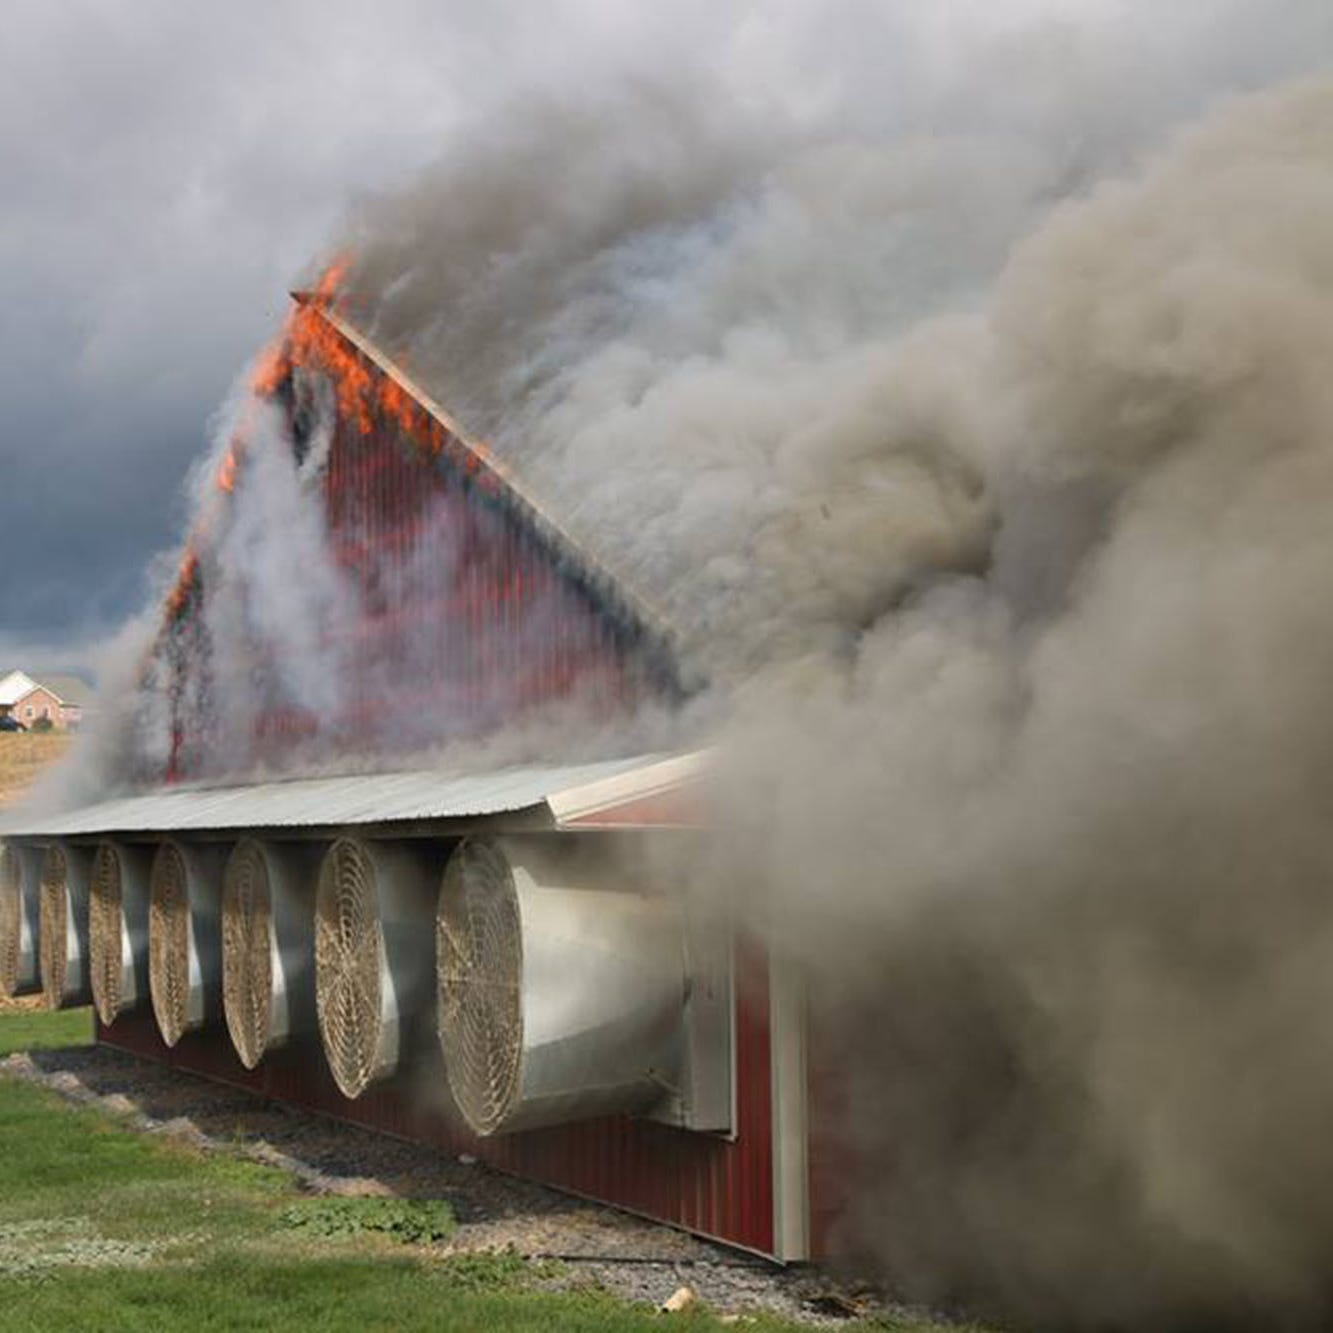 Barn fire loss estimated at $2 million